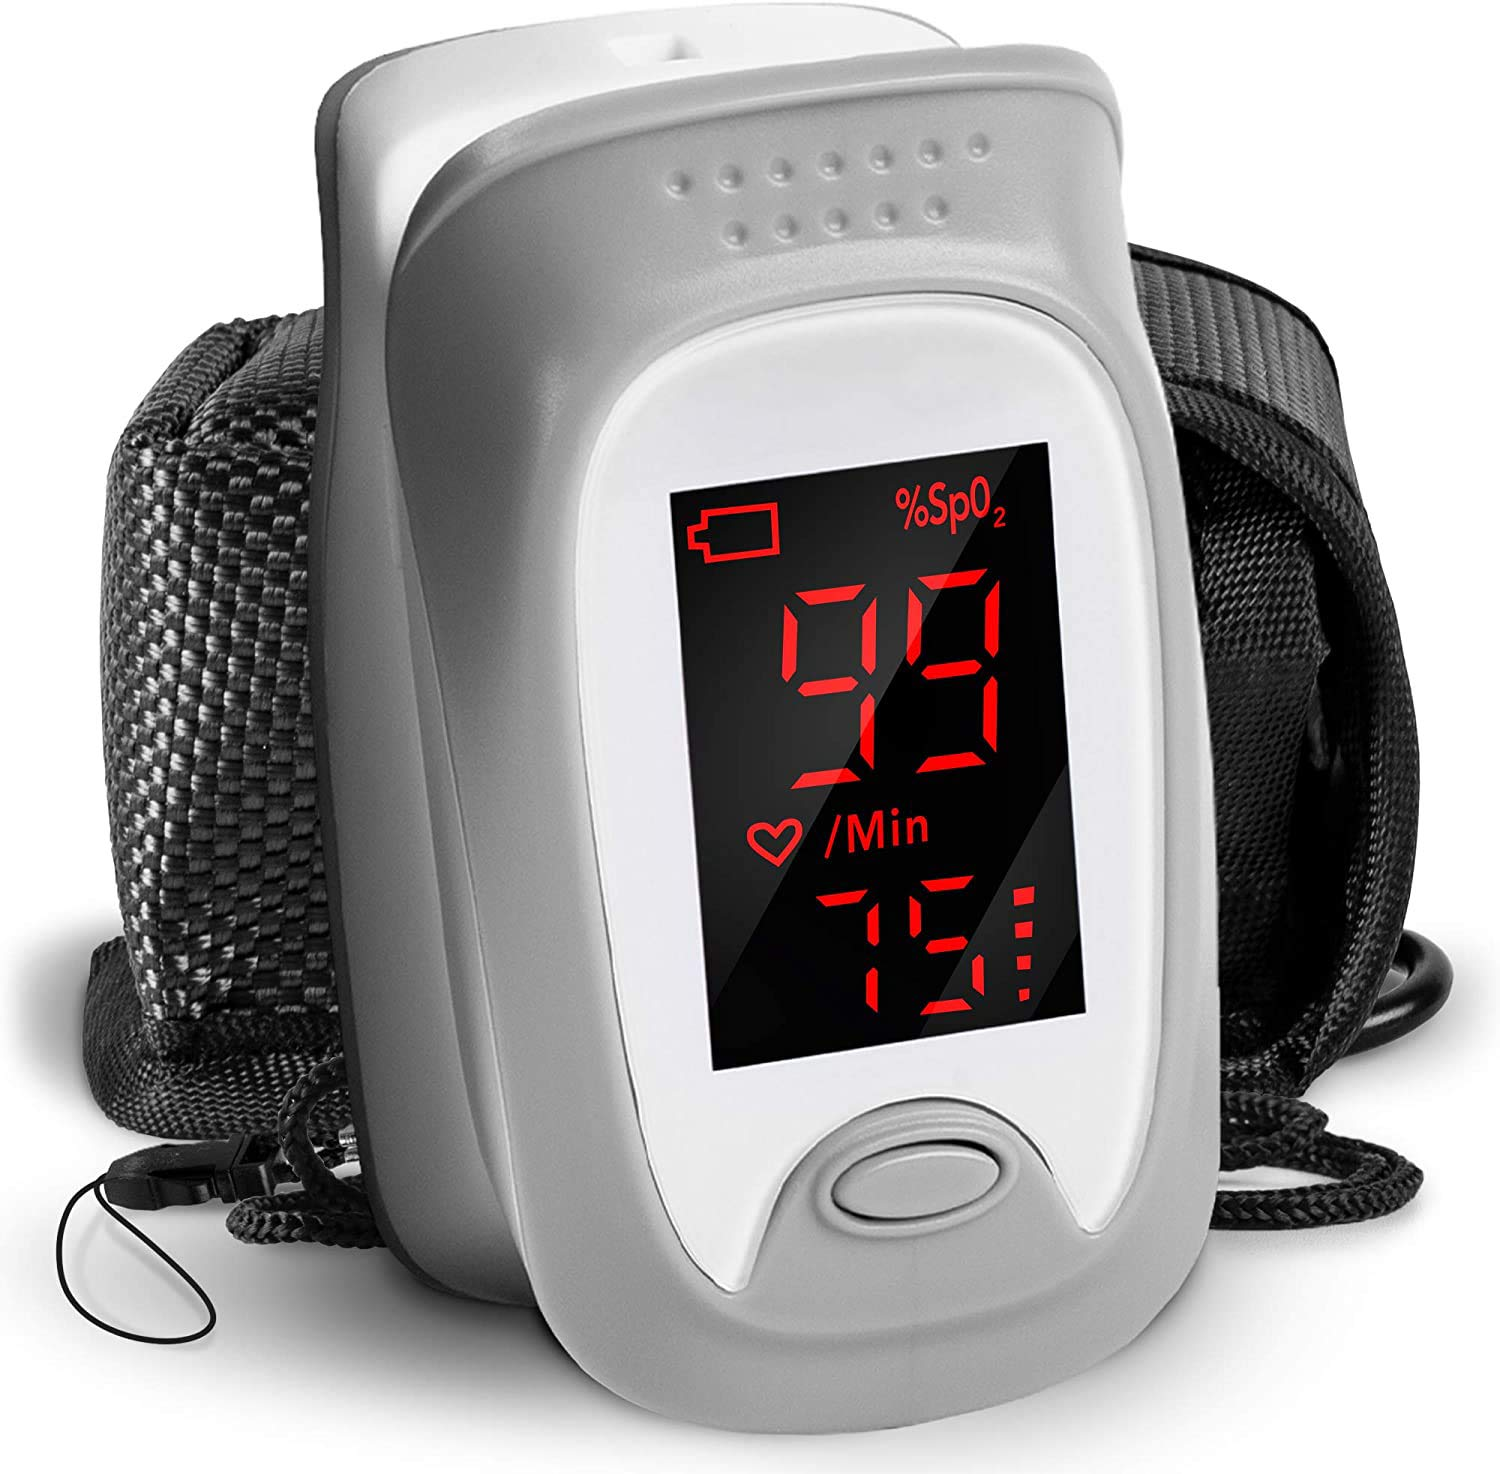 Finger Pulse Oximeter OX01R | Measures SpO2, Blood Oxygen, Pulse Rate | Digital Easy to Read Display & Accurate Readings | Comes with Lanyard and Carry Pouch